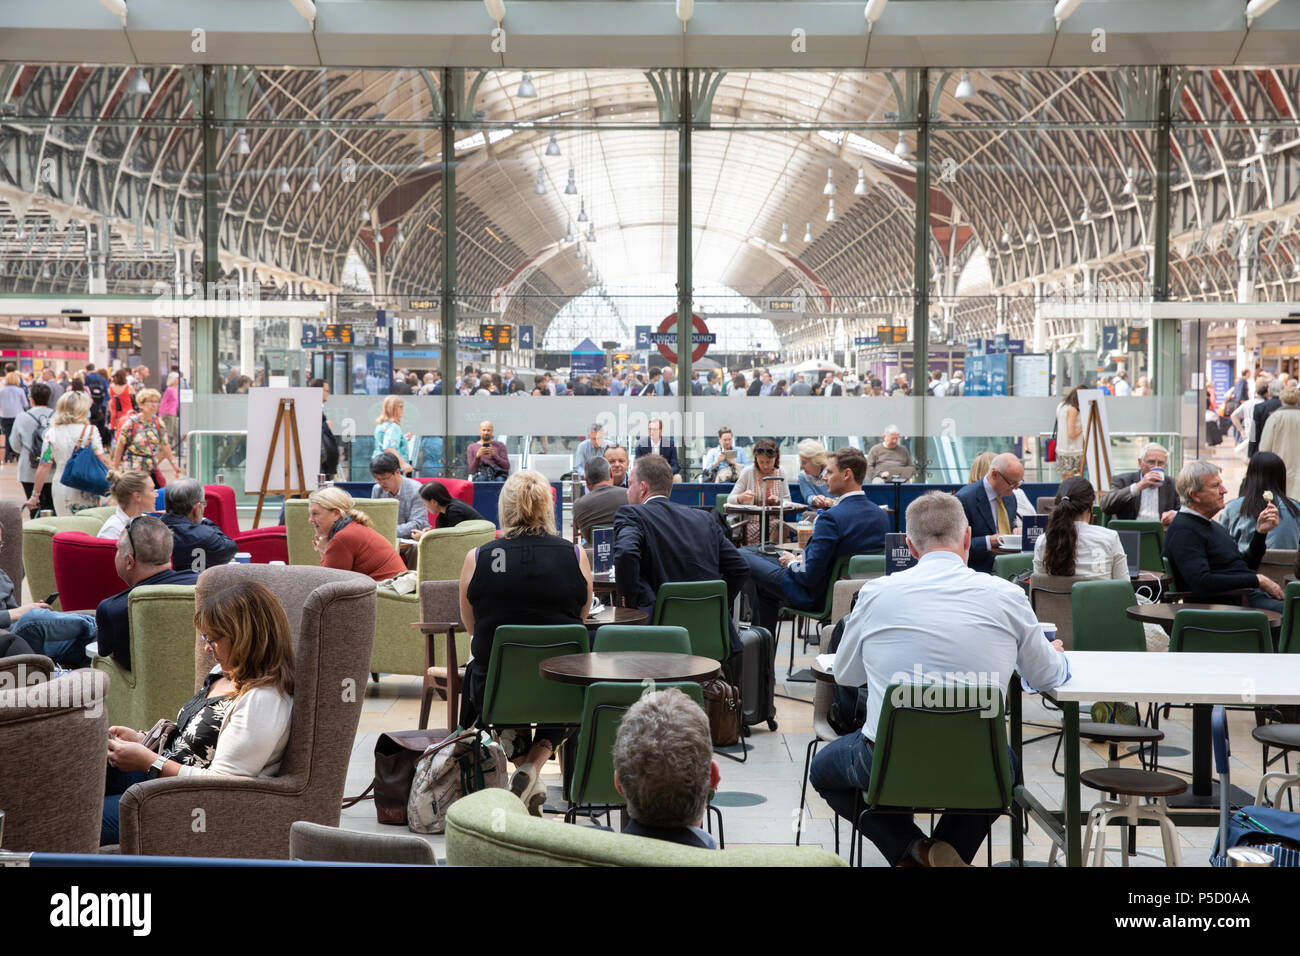 Caffe Ritazza dans la gare de Paddington, Londres. Photo Stock